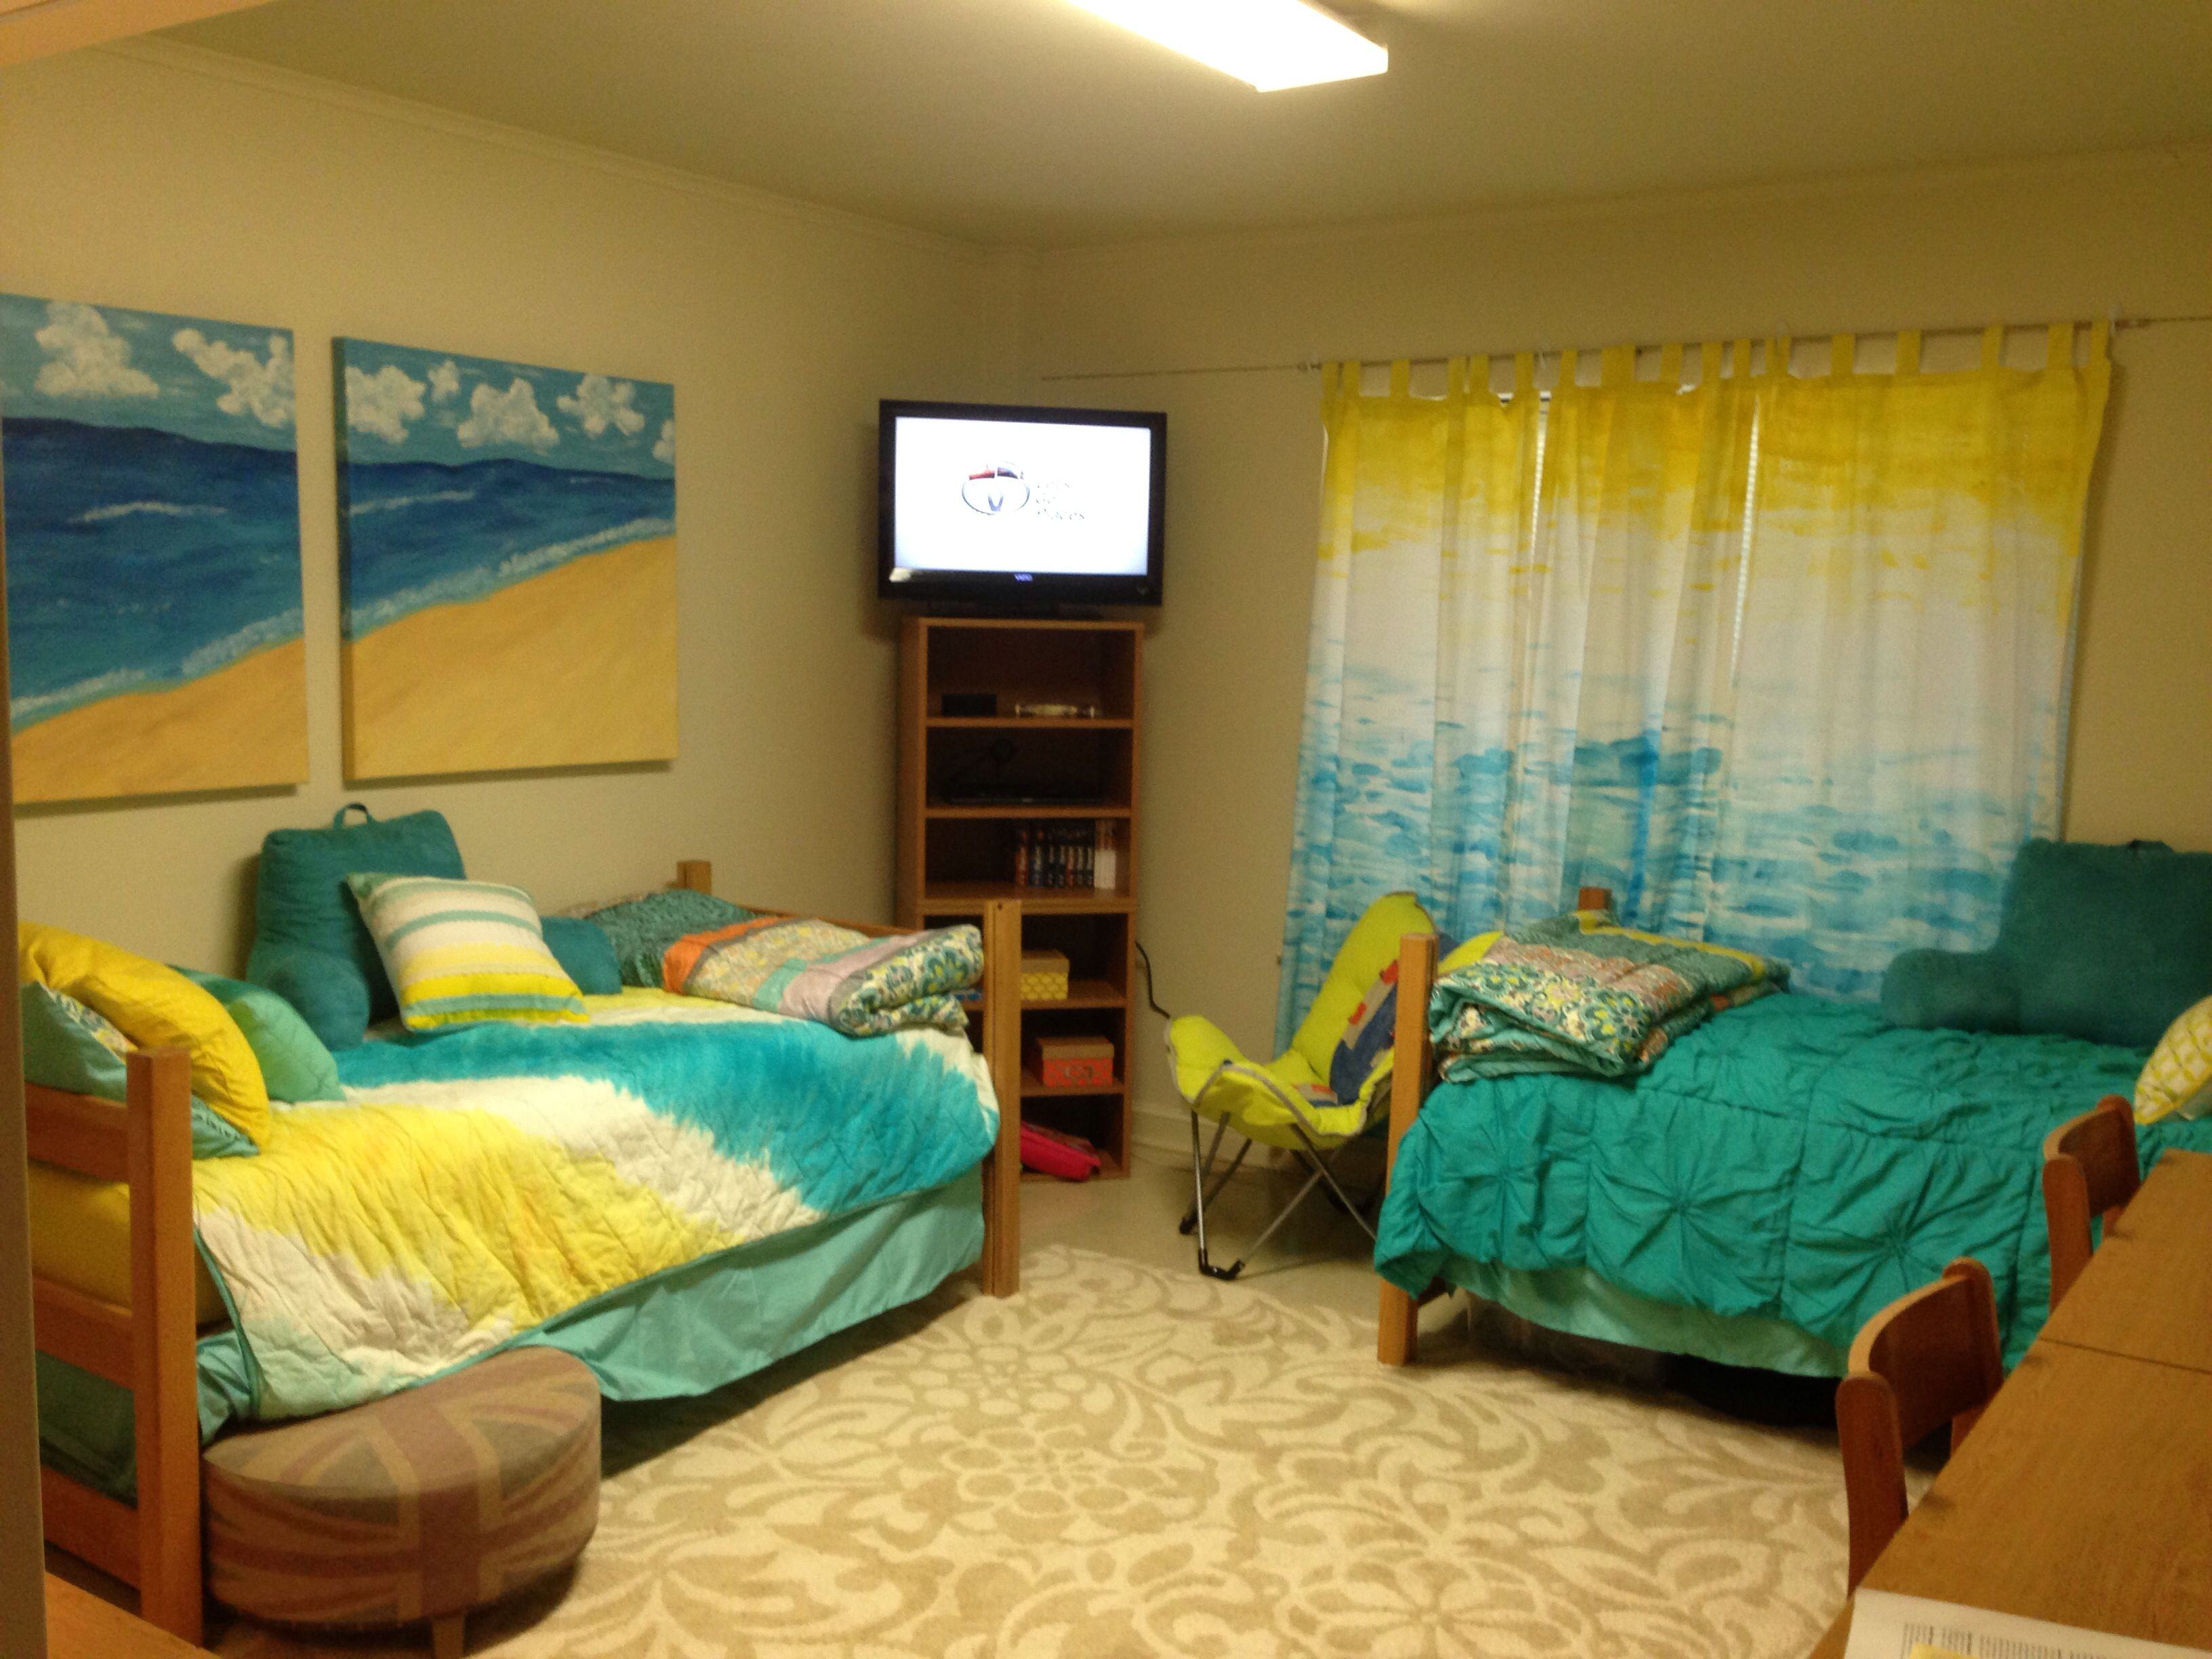 Baylor Dorm Room Dawson I Really Like The Color Coordination Though This Looks A